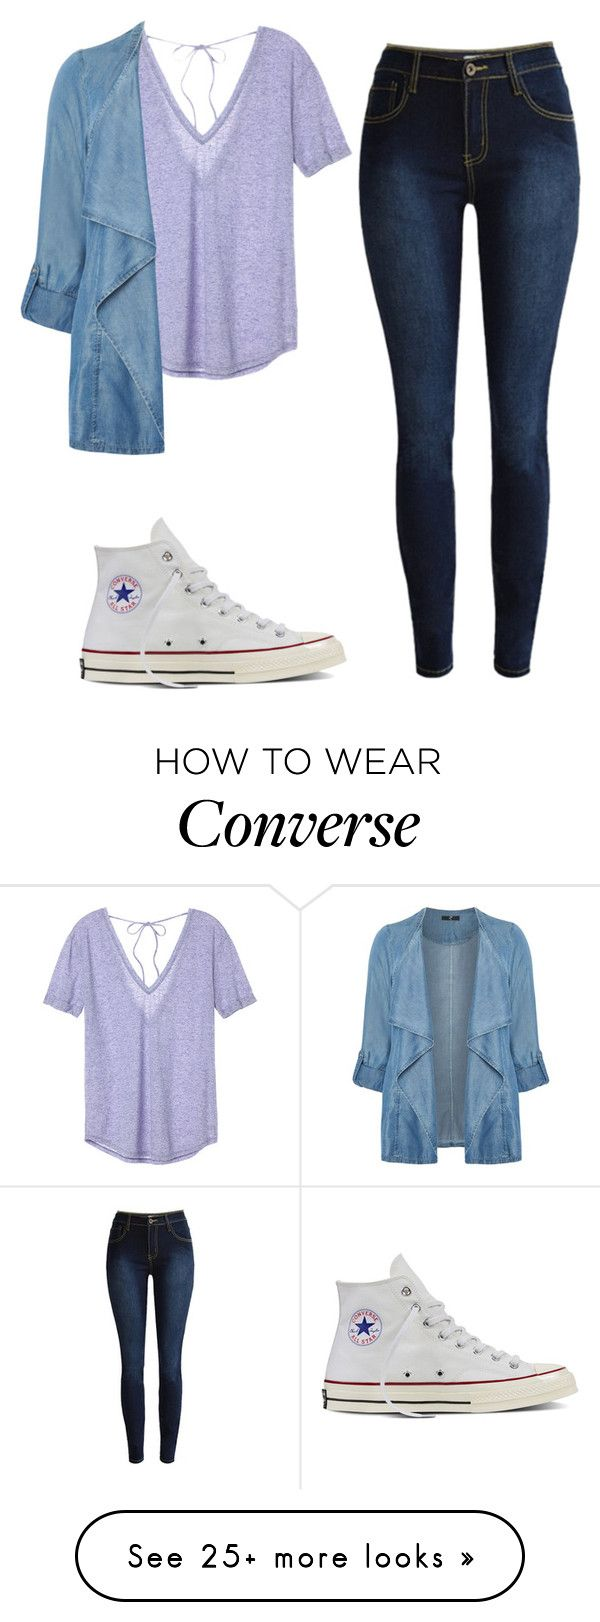 """simple"" by vaniadenisse16 on Polyvore featuring Victoria's Secret, Evans, Converse and plus size clothing"